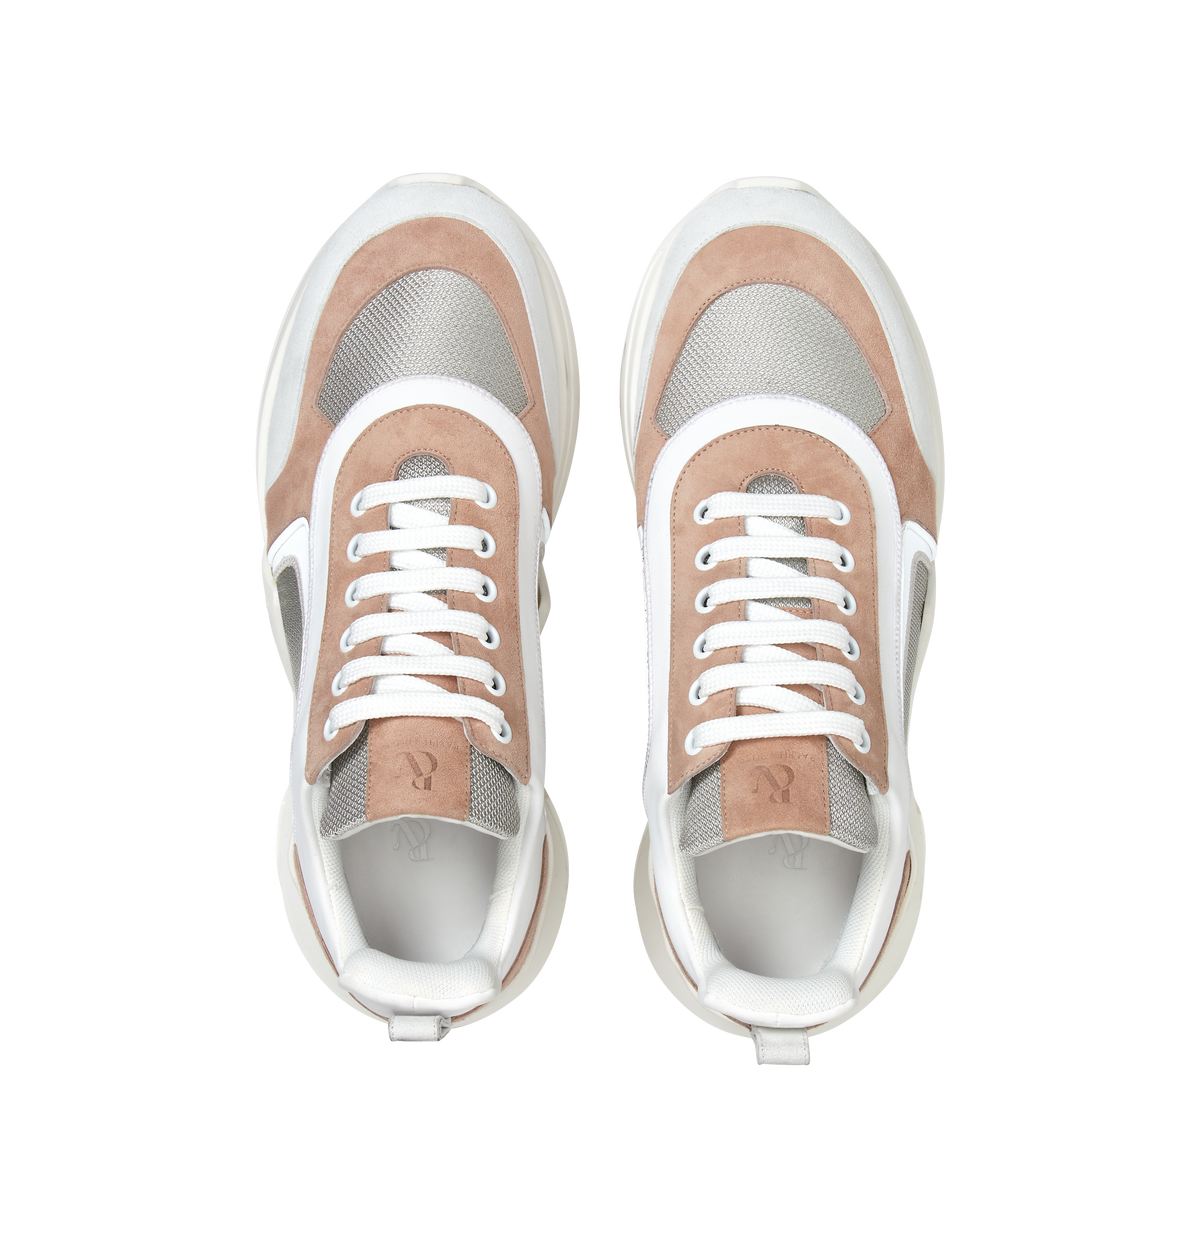 Tan and White Suede 4.0 Sneakers